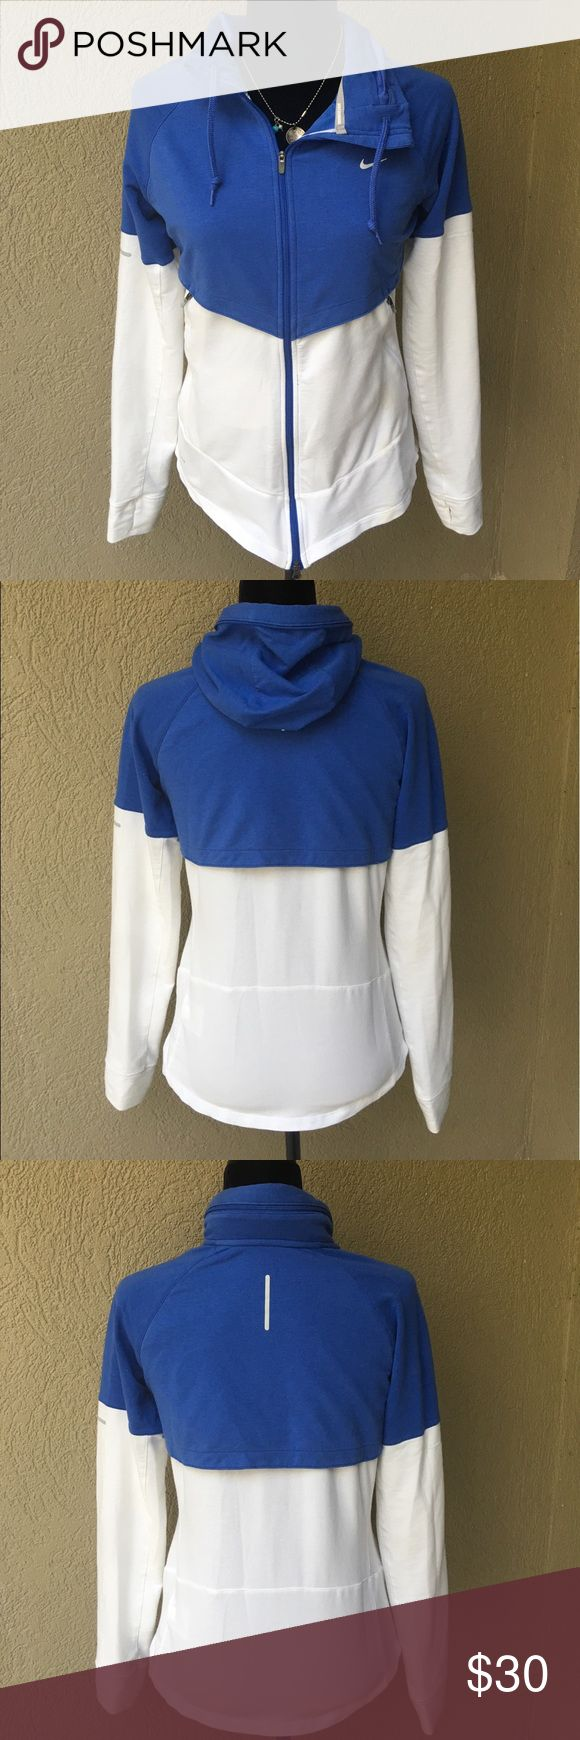 """Nike Dri-fit Running Jacket PRICE FIRM Nike Dri-fit runners jacket- this jacket has all the necessities! Wear w/hood out OR zip in in so you don't have good, loose Fri-fit web beneath the blue color to help with air flow, front zippers in front, thumb holes, also has a a double zipper up the front, great curved hem! EUC no holes but there is one stain on the left front pocket that will likely come out I just don't use any pretreat or chemicals when I wash. 18"""" Bust 23.5 length ✅I ship same…"""